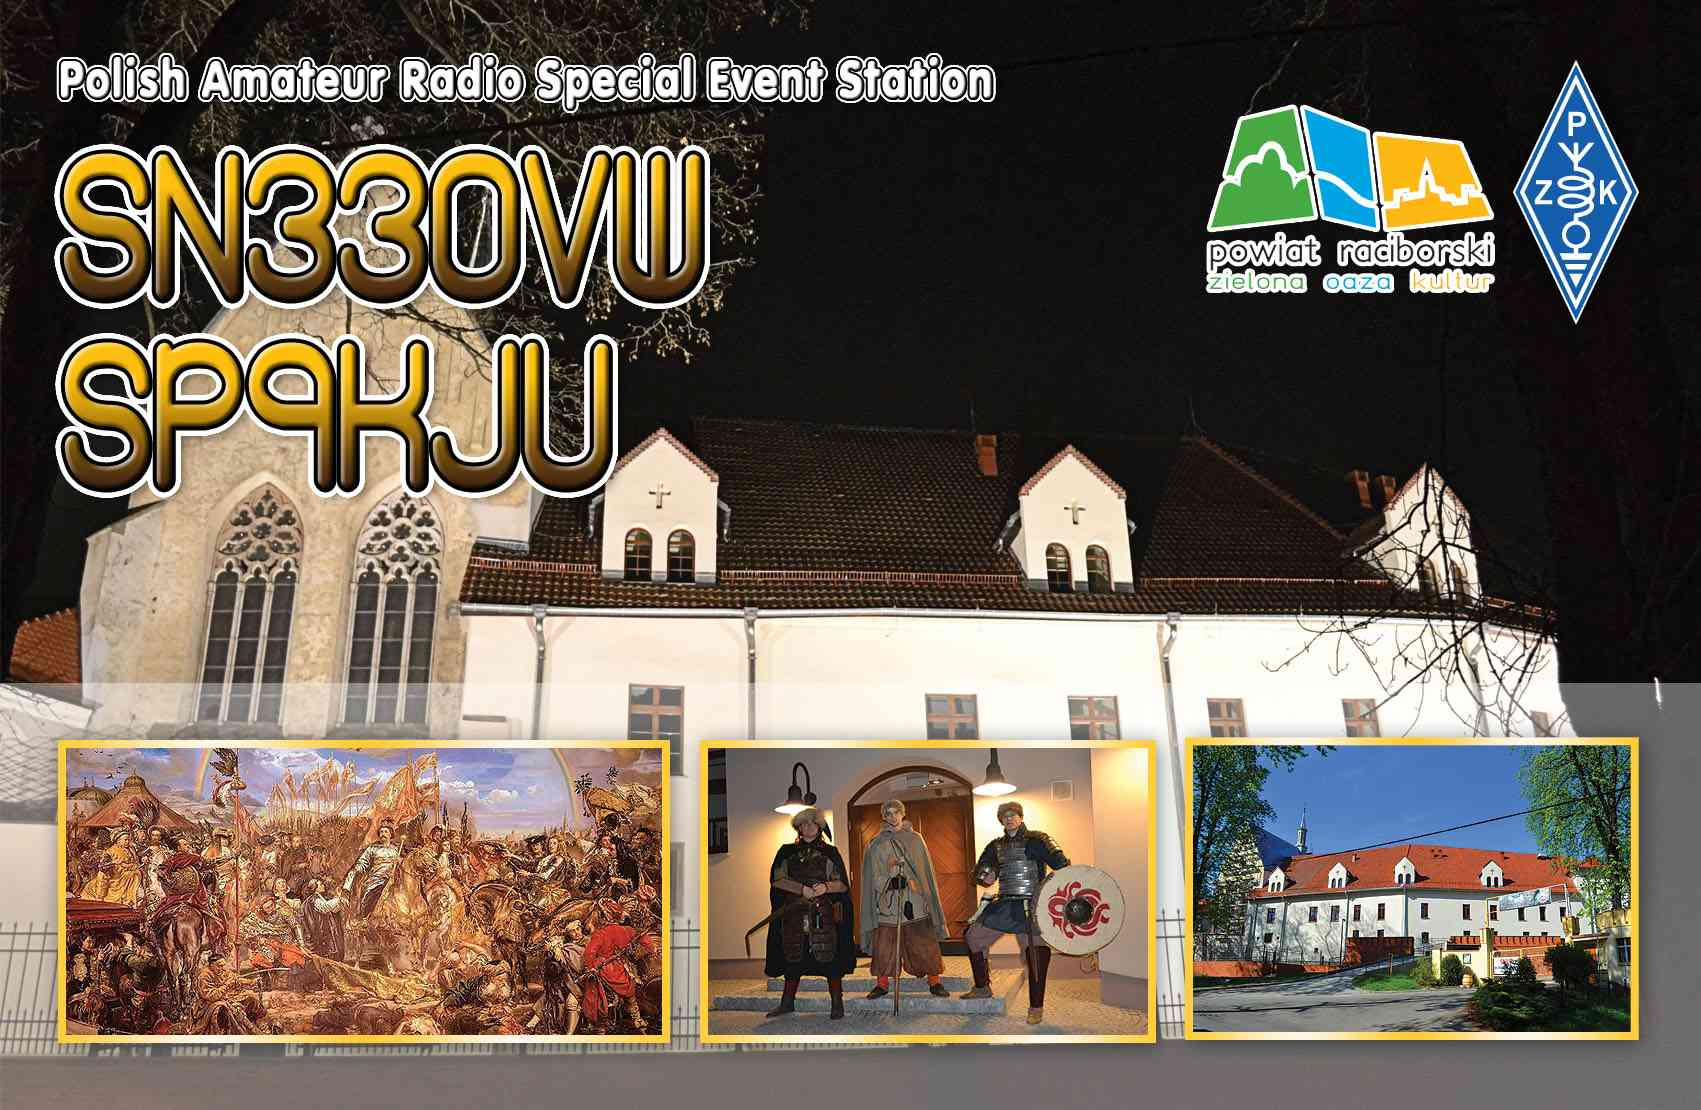 QSL image for SN330VW